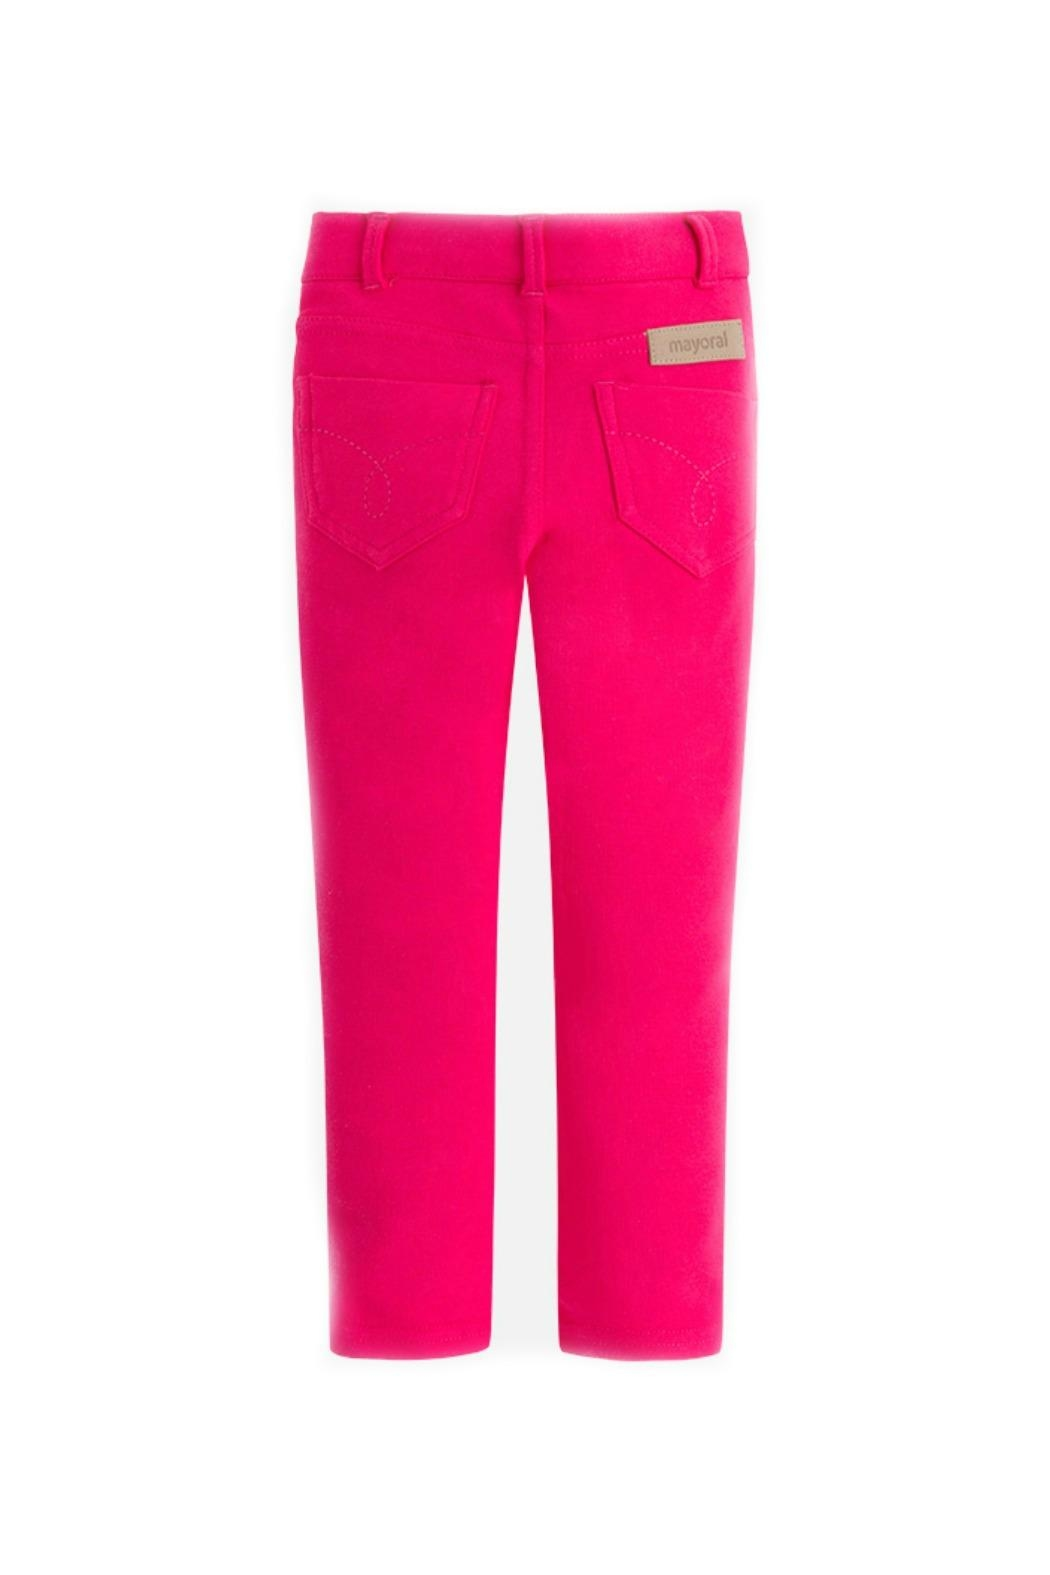 Mayoral Girls Super-Skinny-Magenta-Jeggings - Front Full Image